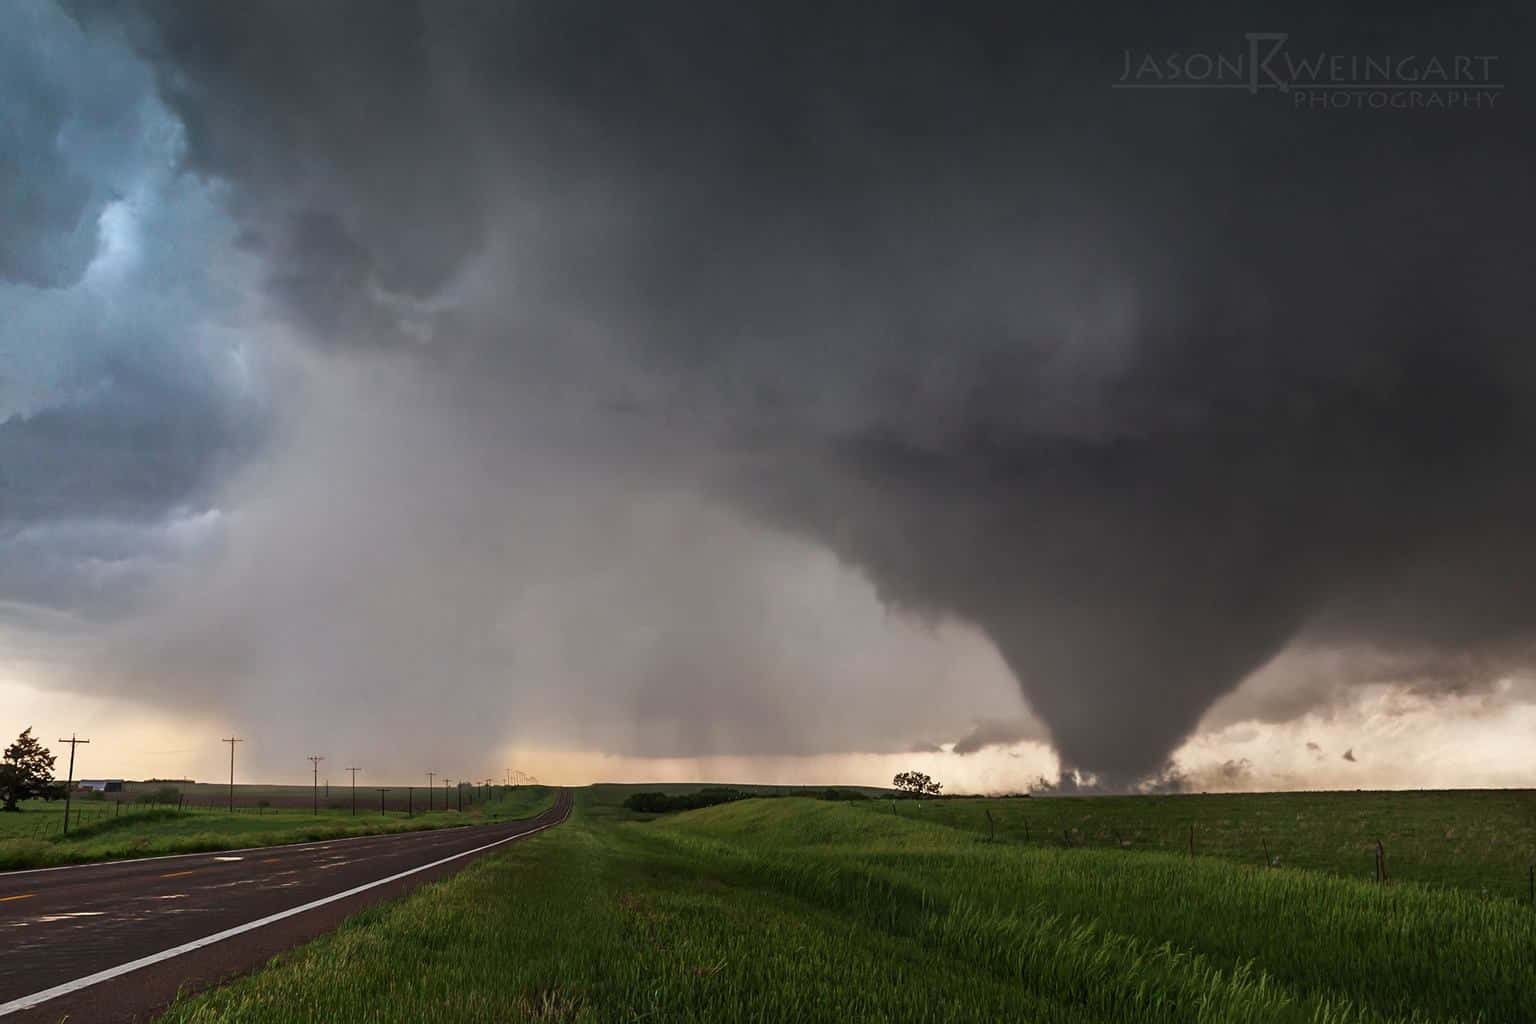 Nothing quite like sitting under the clear slot, watching a tornado spin across an open field. 05.28.13 - Bennington, Kansas  f/9.0 1/80th second  ISO 1000